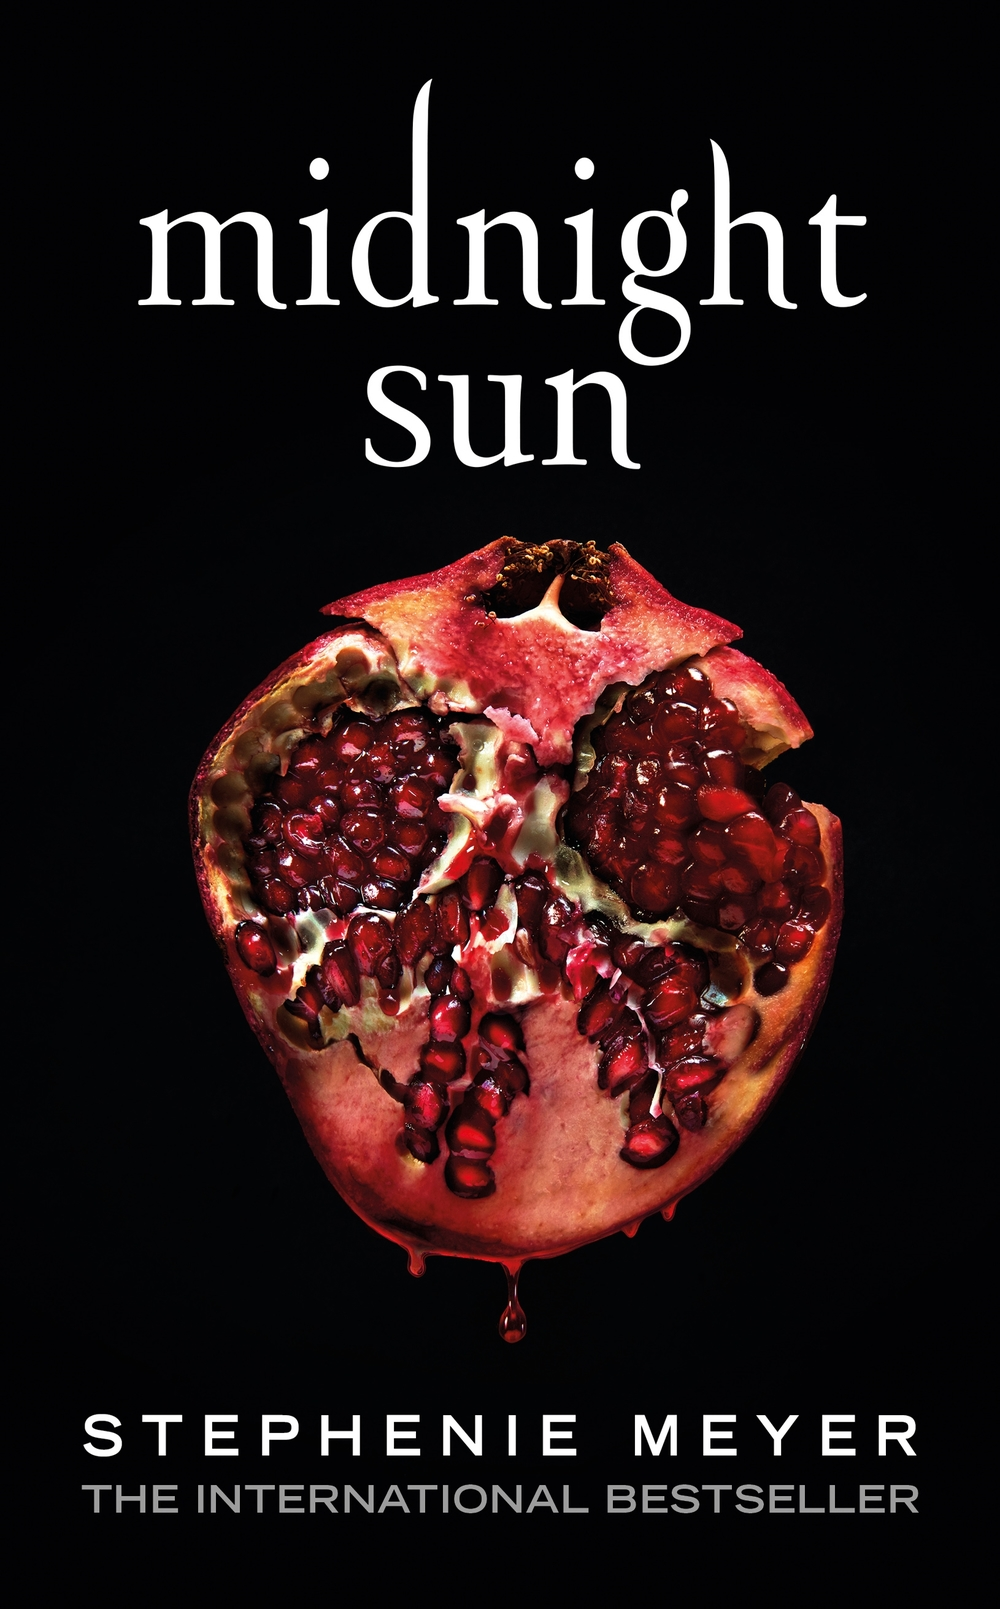 Large midnight sun cover